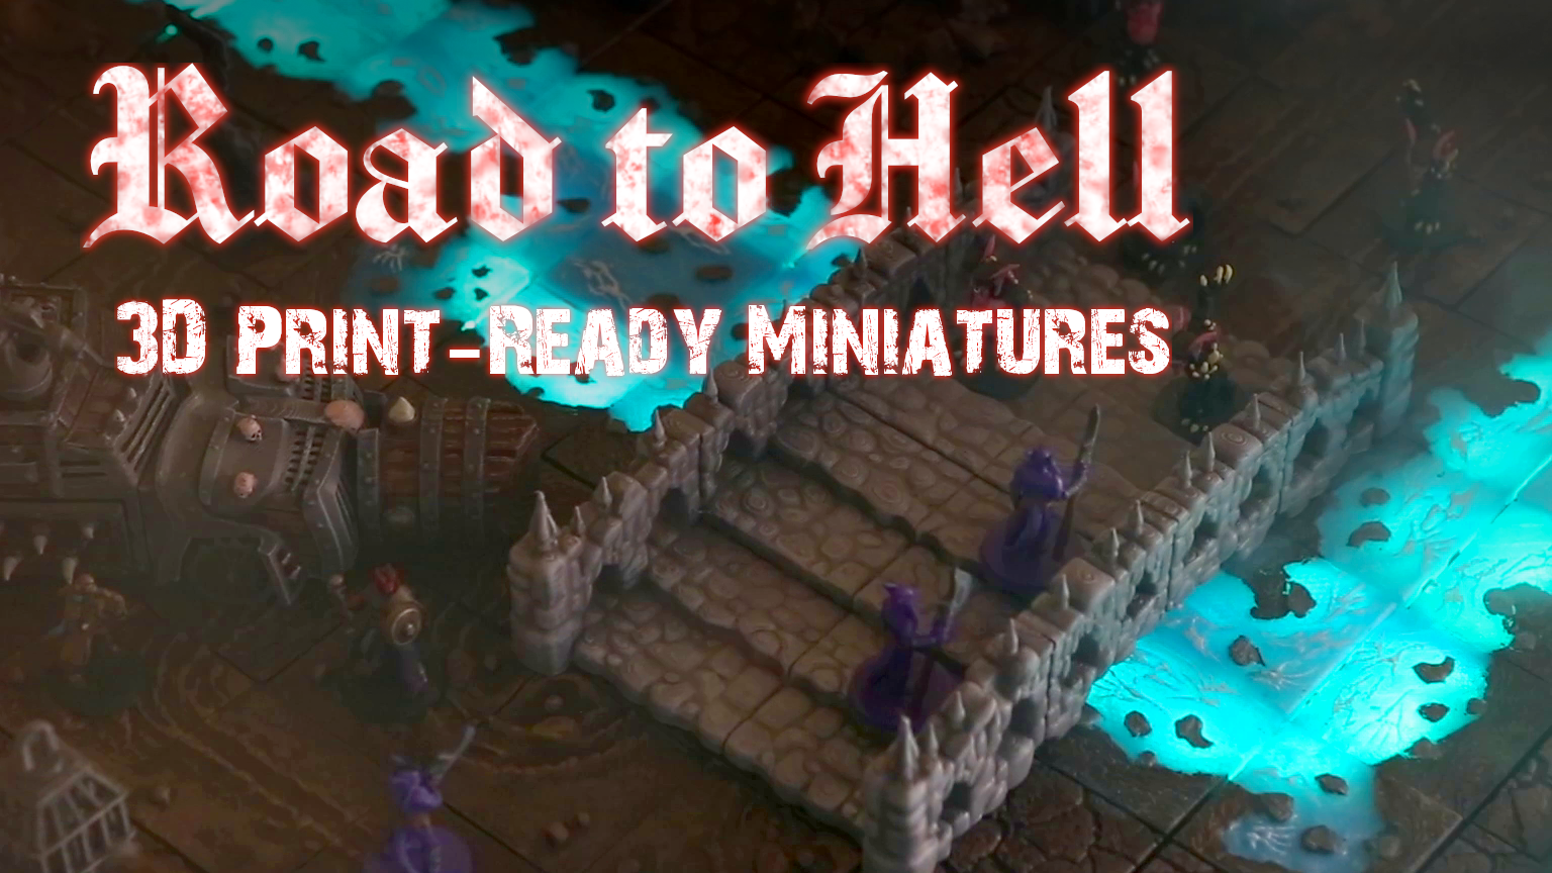 3D printable vehicles, figures, and terrain for your RPG/Tabletop campaign. Exceeds all your demon, devil, and hellscape needs!